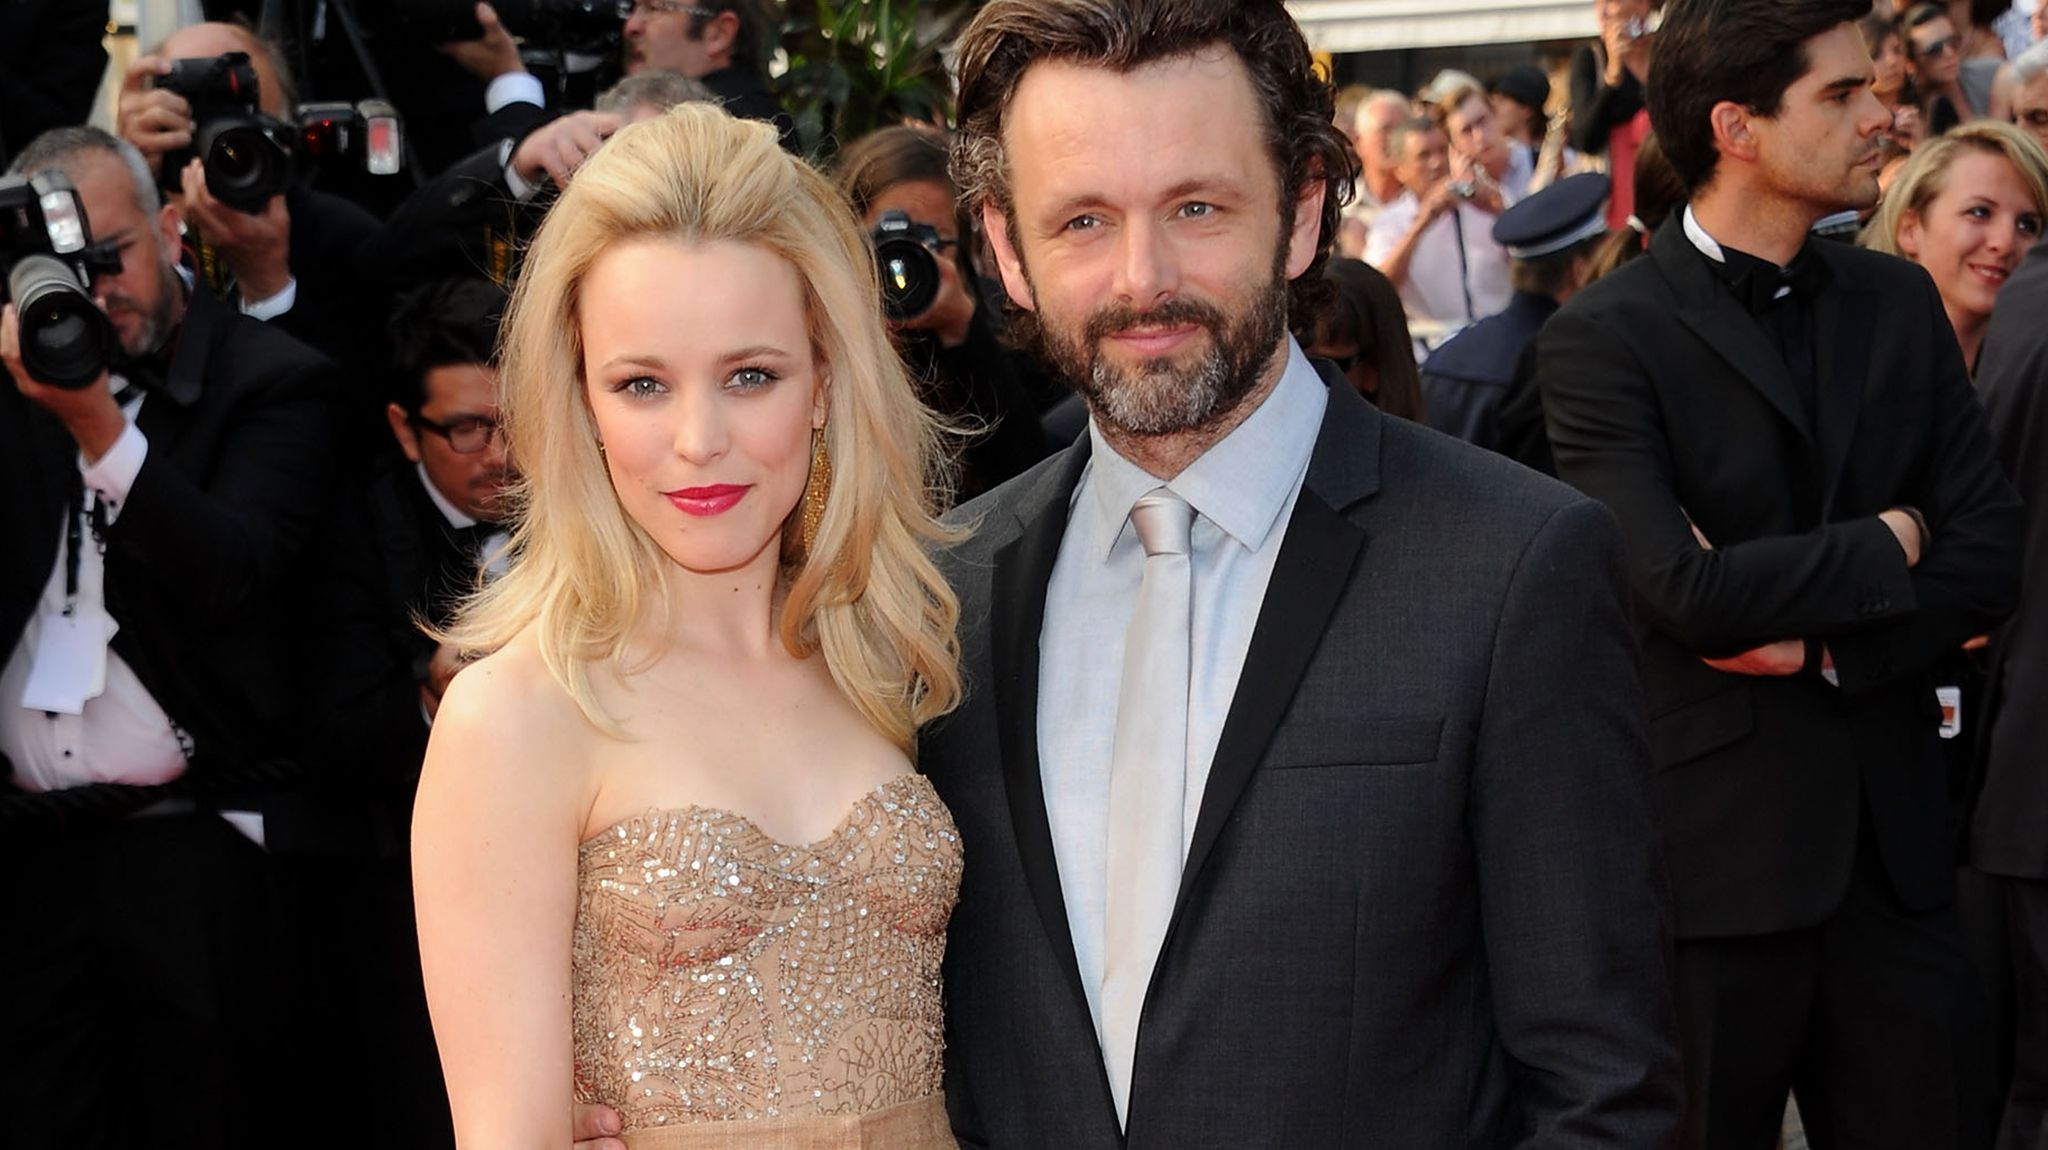 Rachel with boyfriend Michael Sheen | Rachel Mcadams